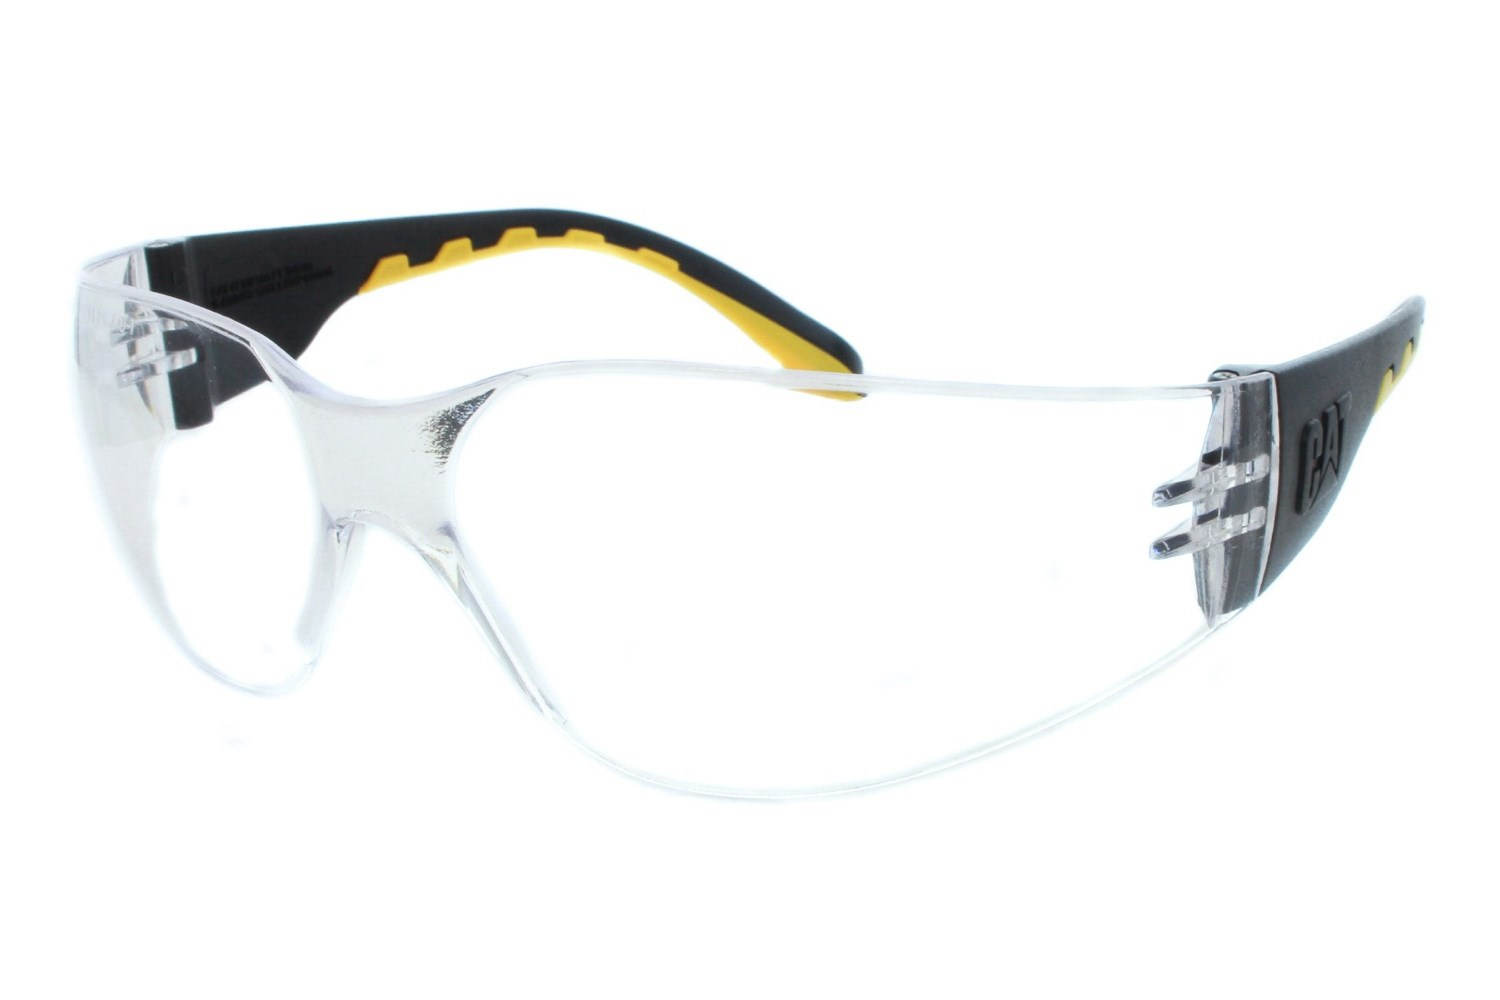 52a1c1f7f0 CAT Track Safety Eyewear - TechnoReadingGlasses